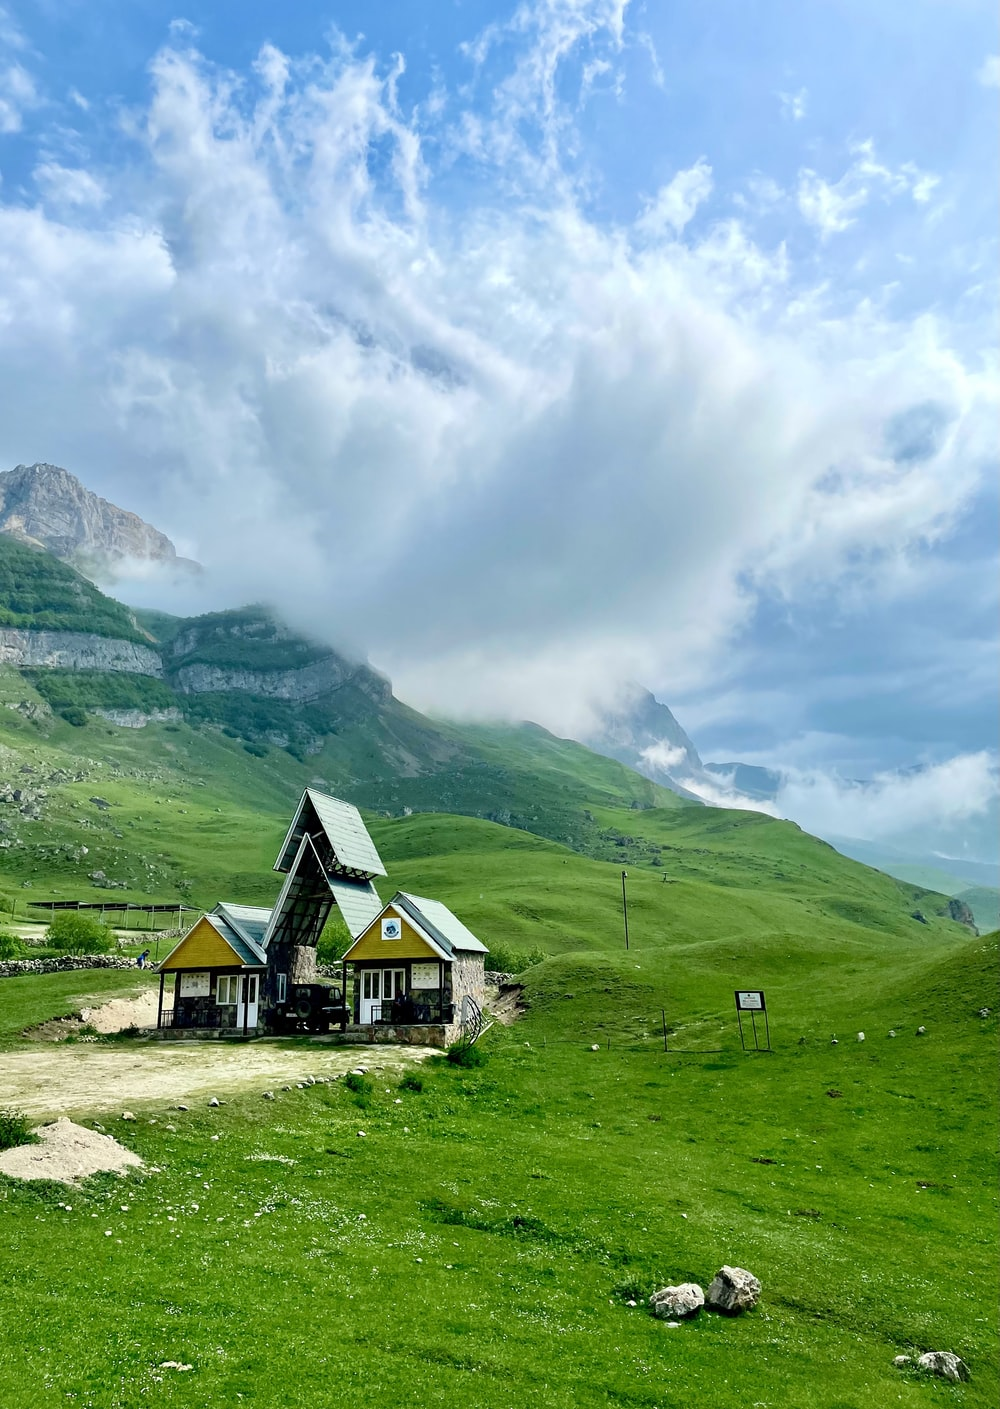 green and brown house near green mountains under white clouds during daytime